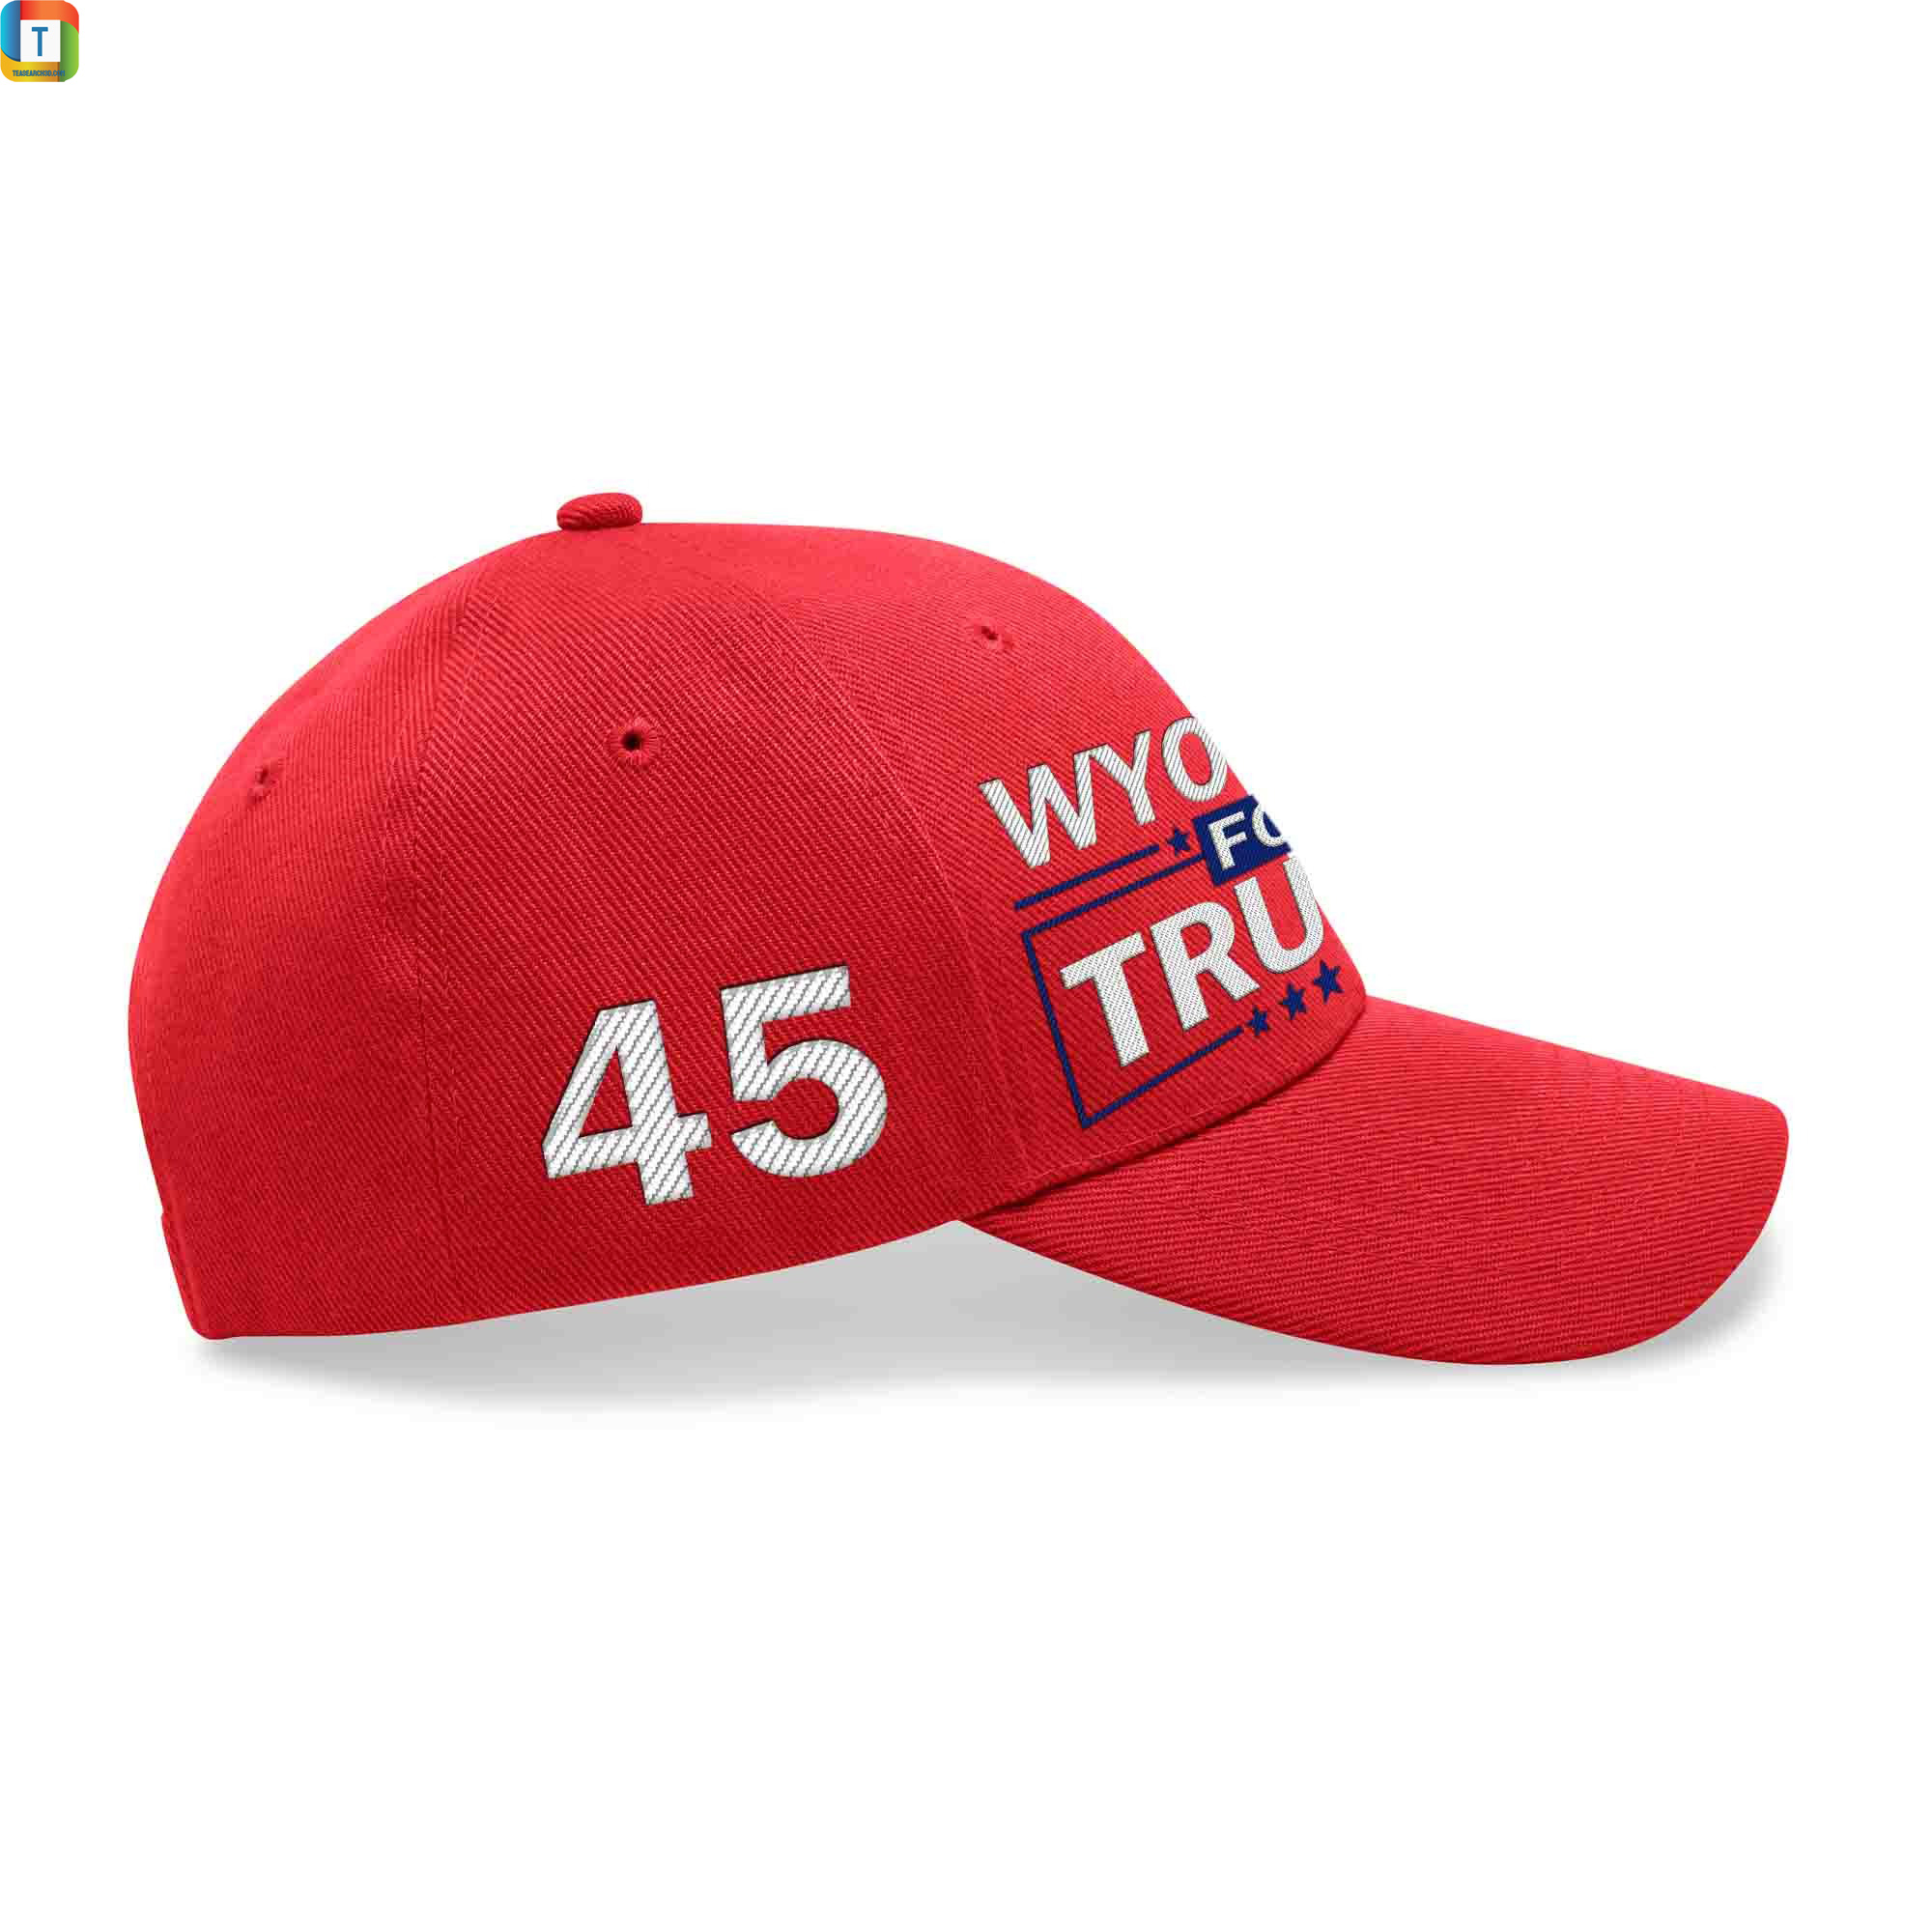 Wyoming For Trump Embroidered Hat 3